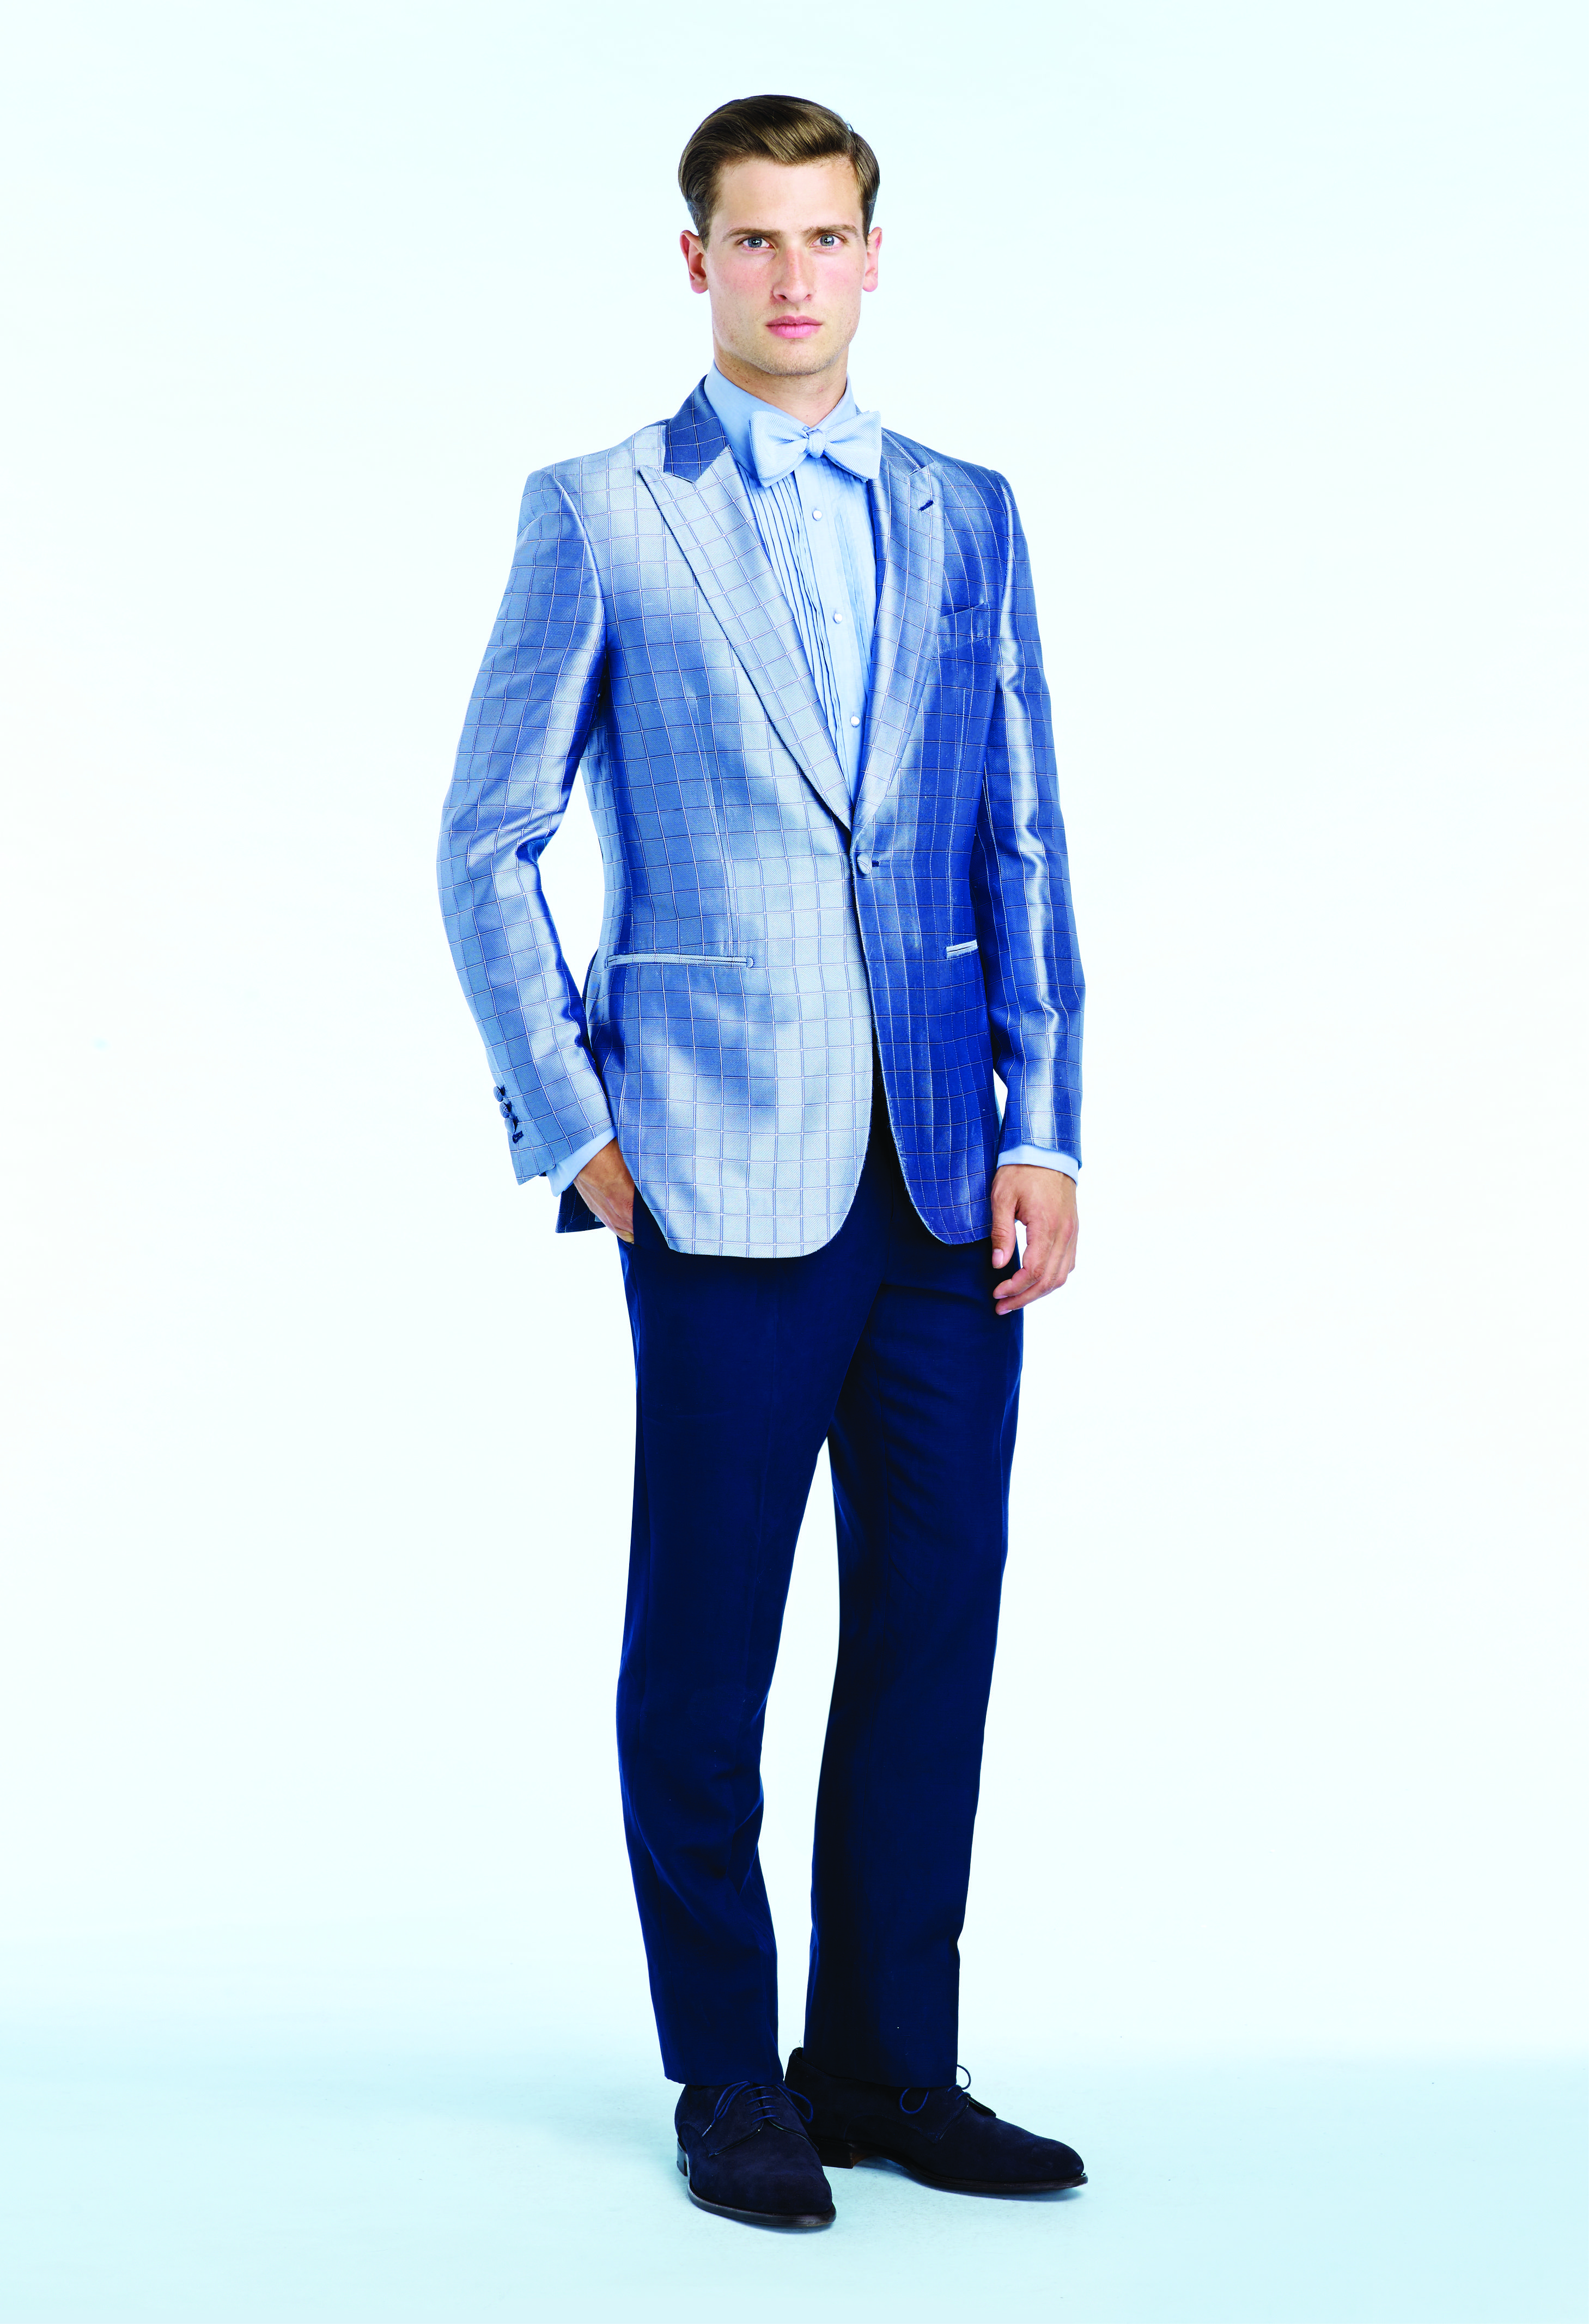 4672f815b8 Ocean blue silk checked jacquard dinner jacket, Light blue pleated cotton  dress shirt, Navy